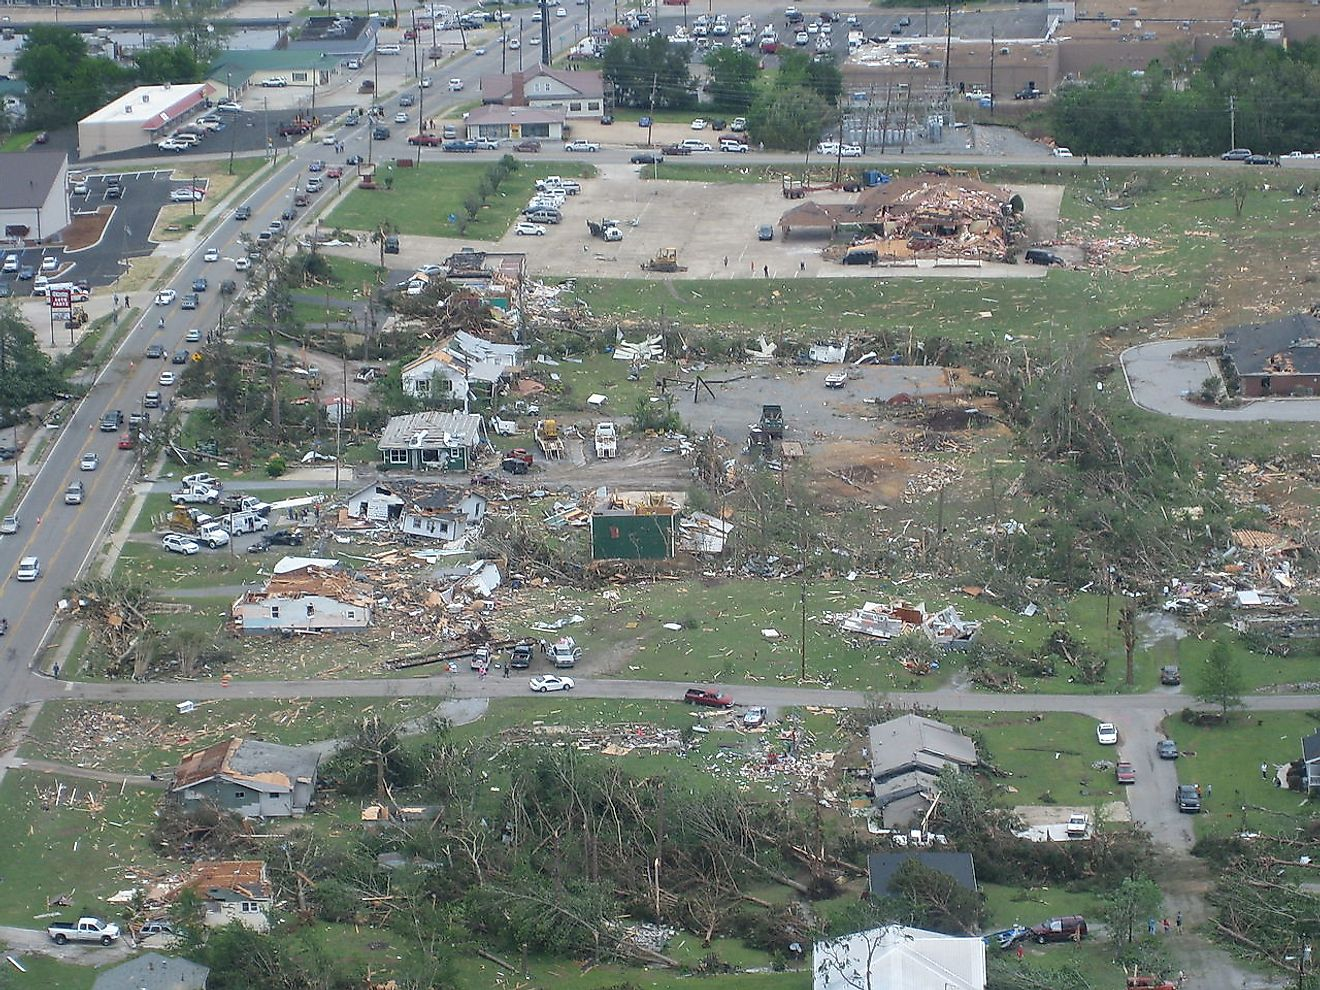 Aerial view of tornado damage in Trenton, Georgia. Image credit: NWS Peachtree City, GA/Public domain